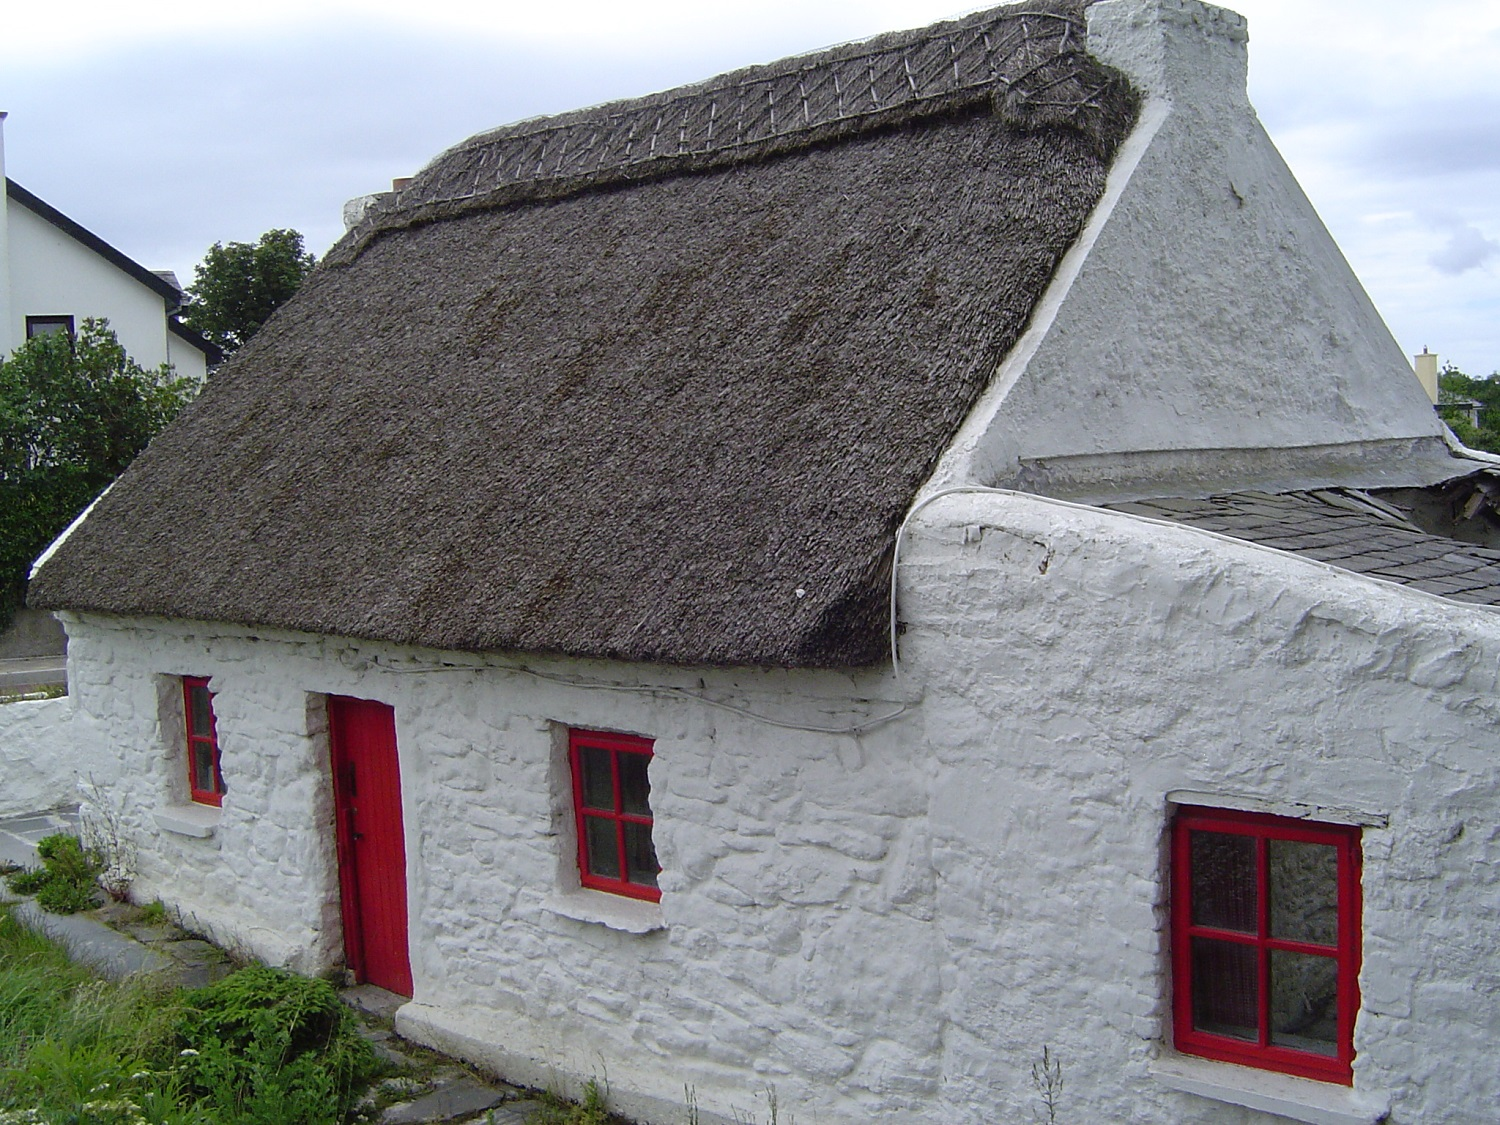 Thatched Cottage in Ireland - Built - On the Bog